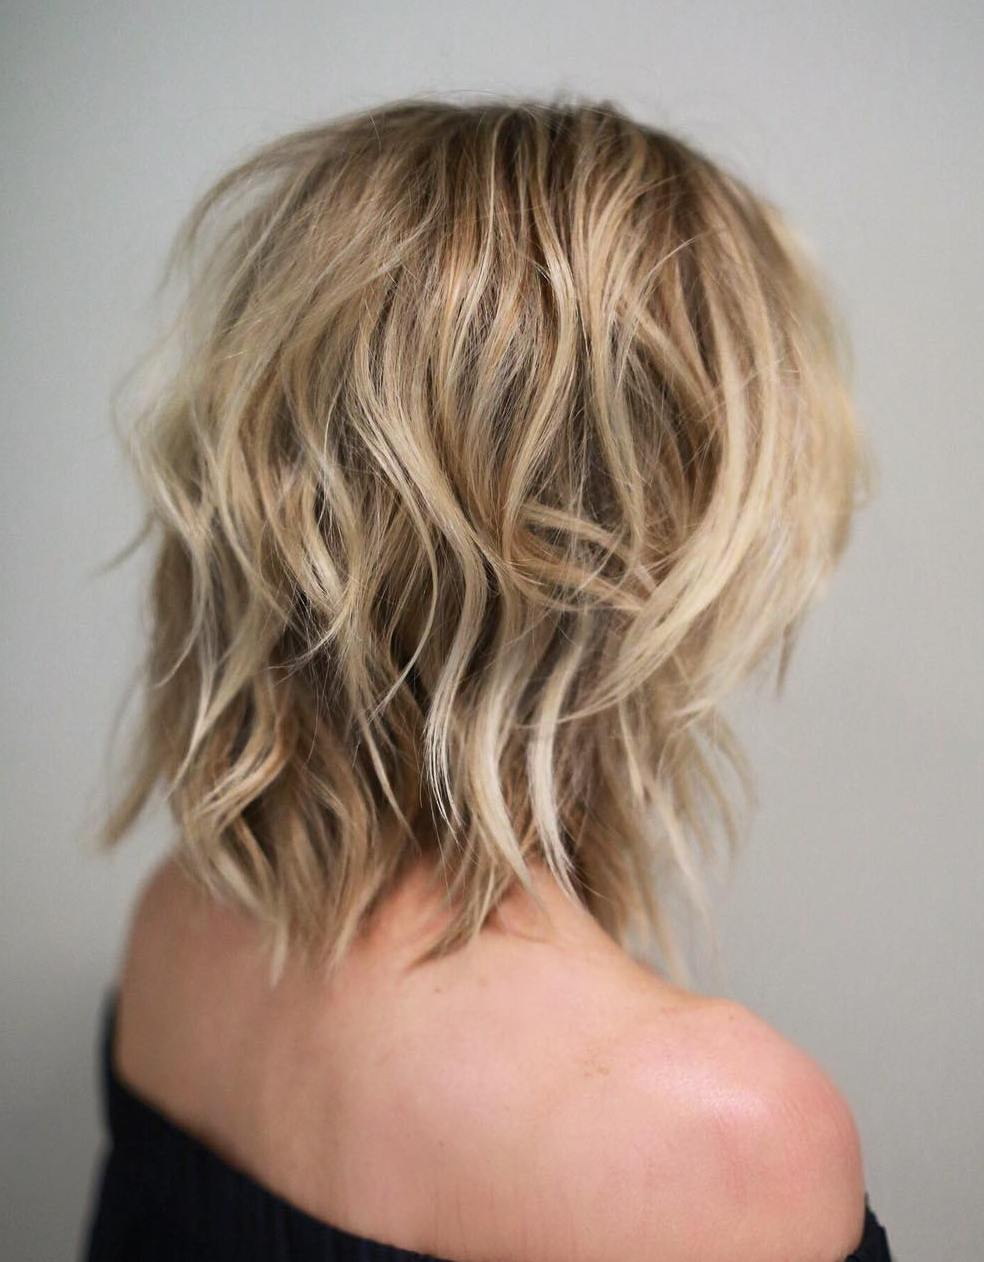 Stupendous Shag Haircuts And Hairstyles In 2016 Therighthairstyles Short Hairstyles Gunalazisus